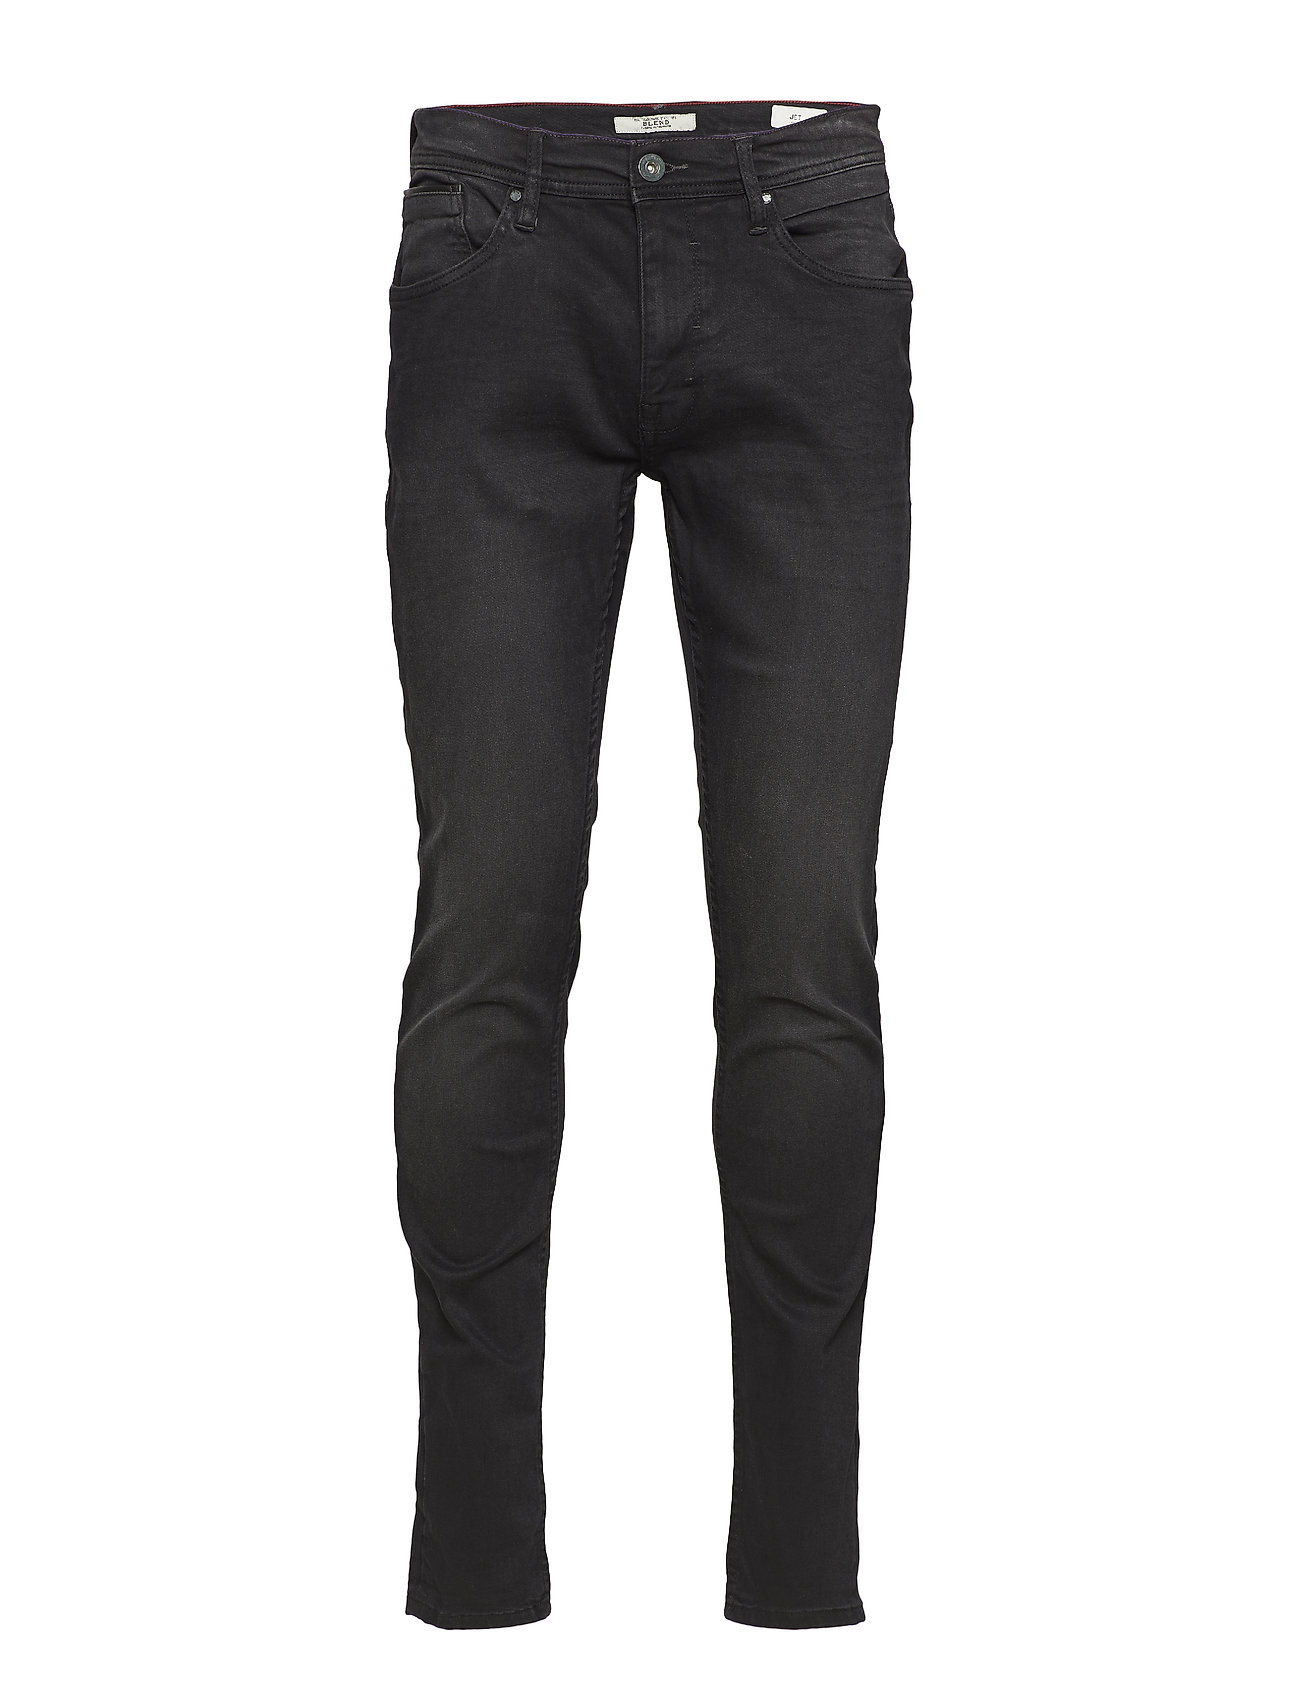 Blend Jeans - NOOS - DENIM BLACK